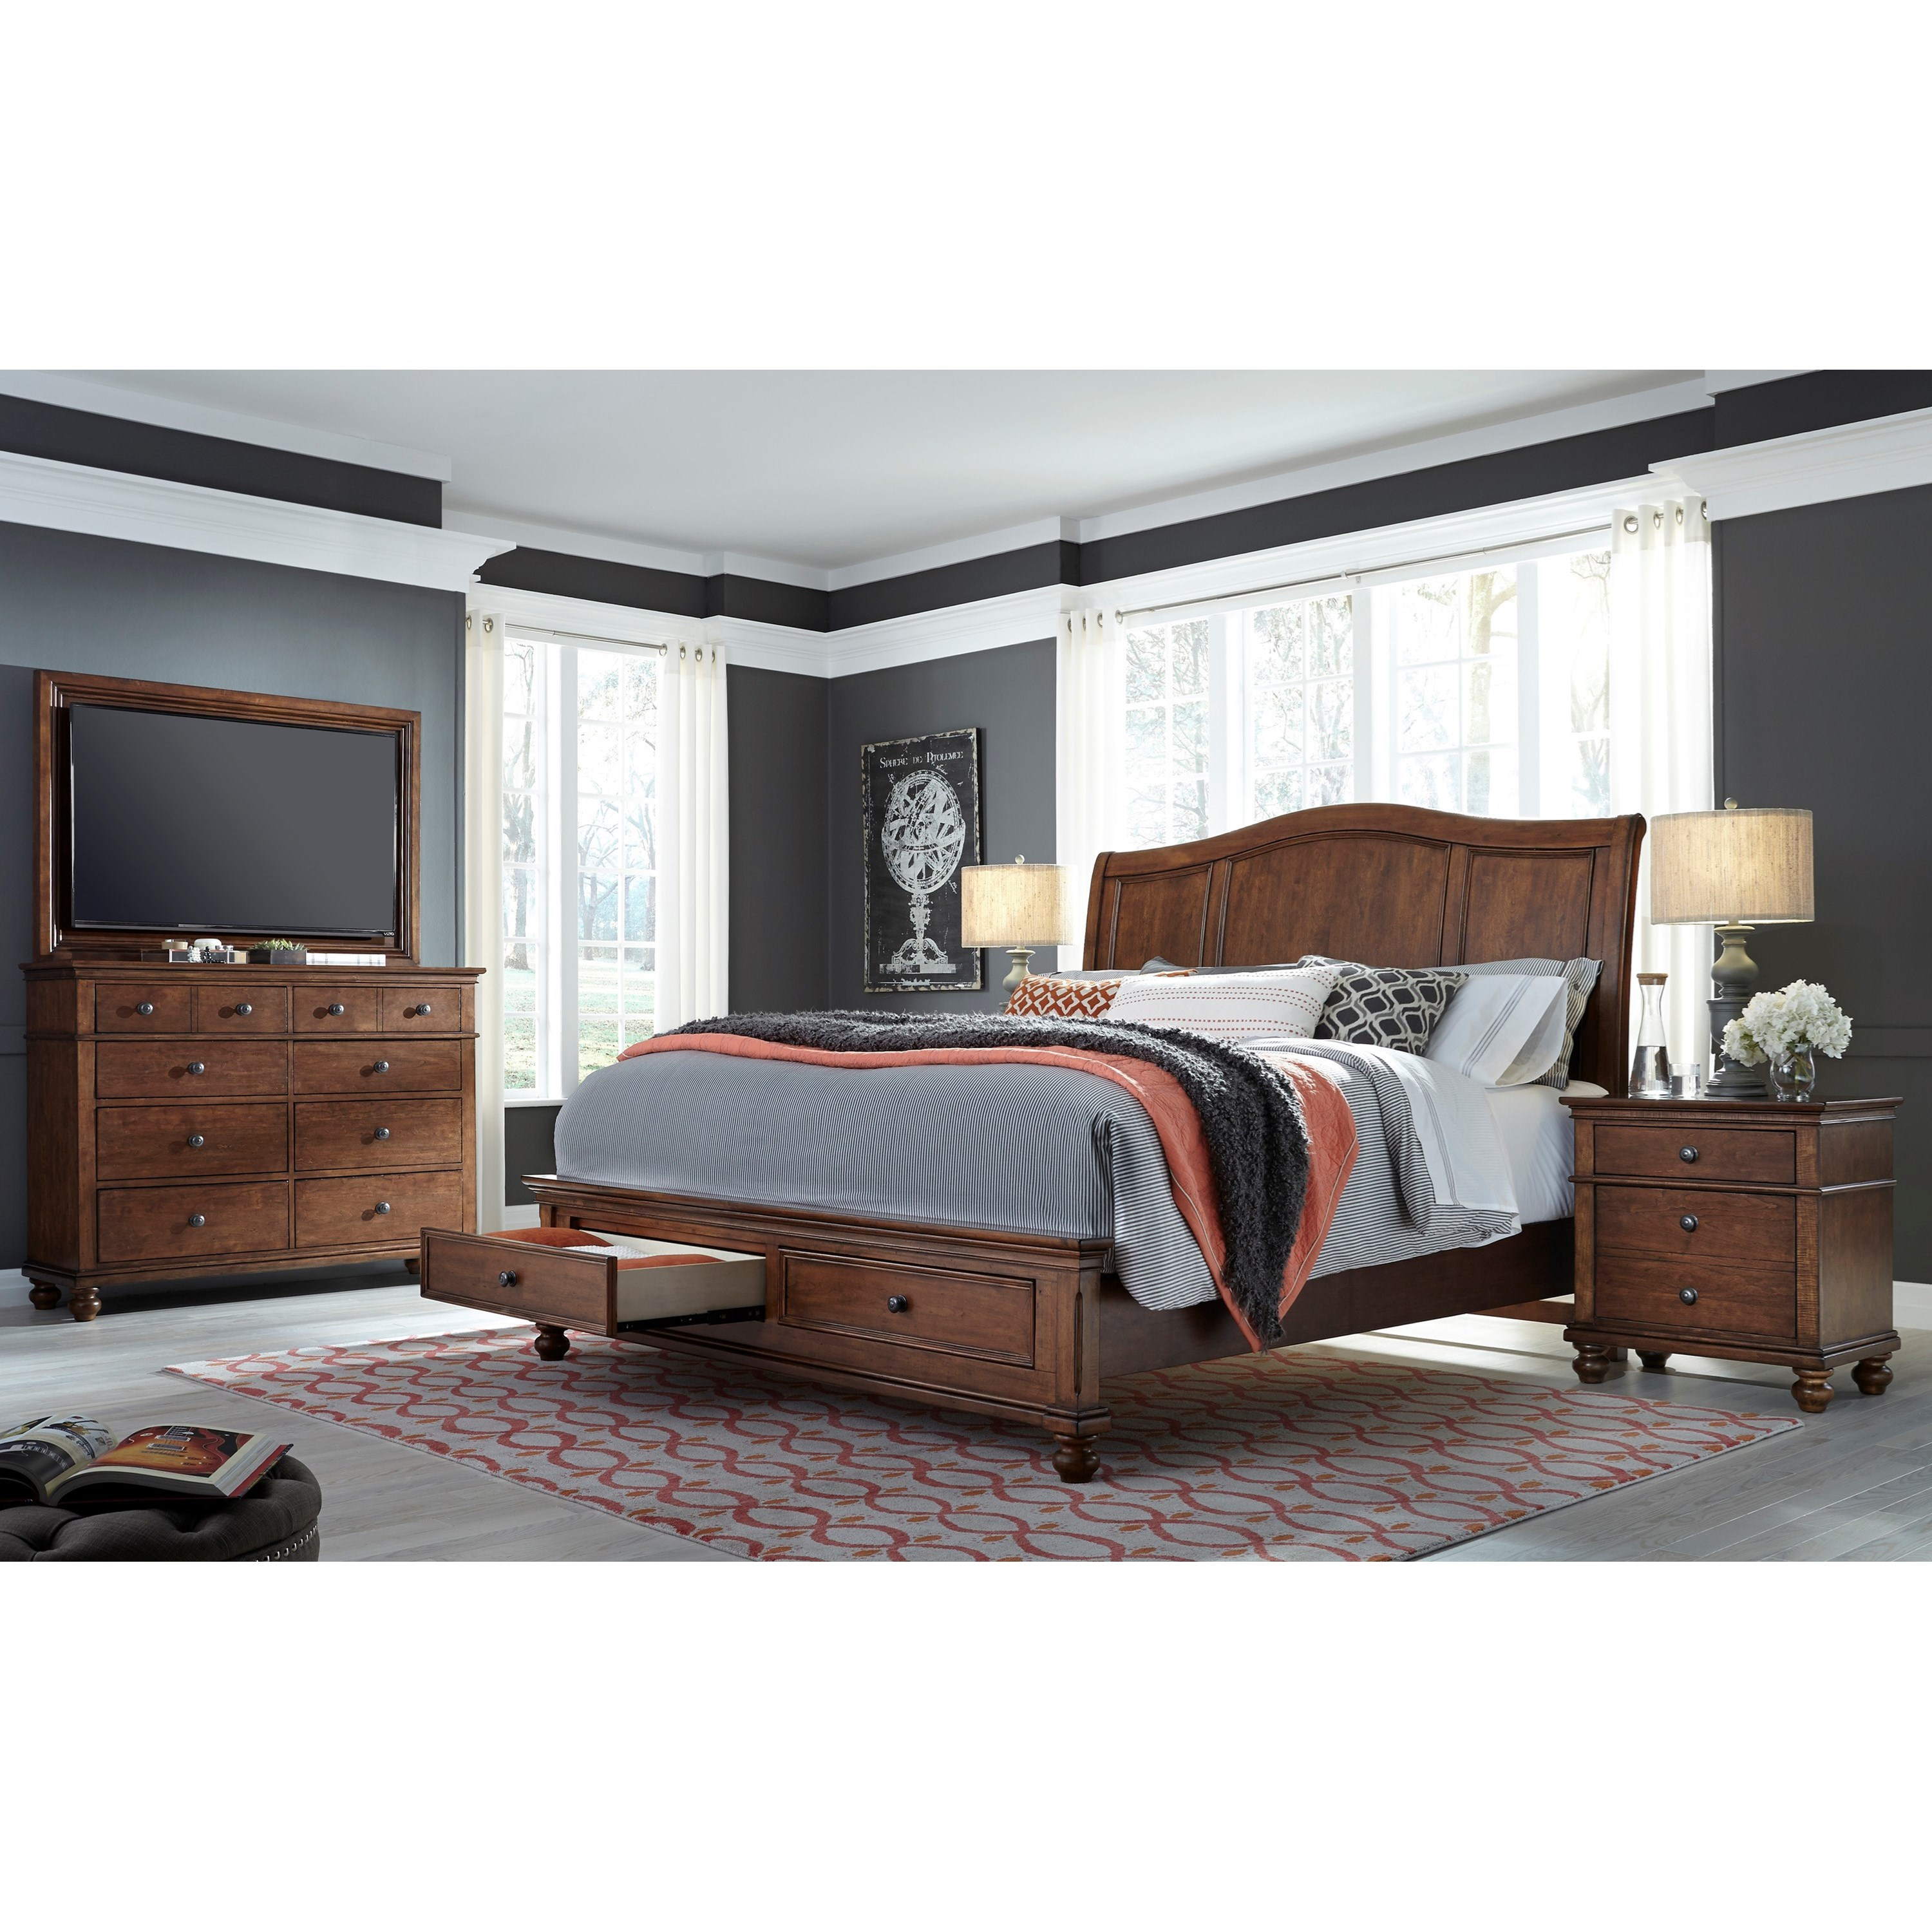 Oxford Queen Bedroom Group by Aspenhome at Walker's Furniture